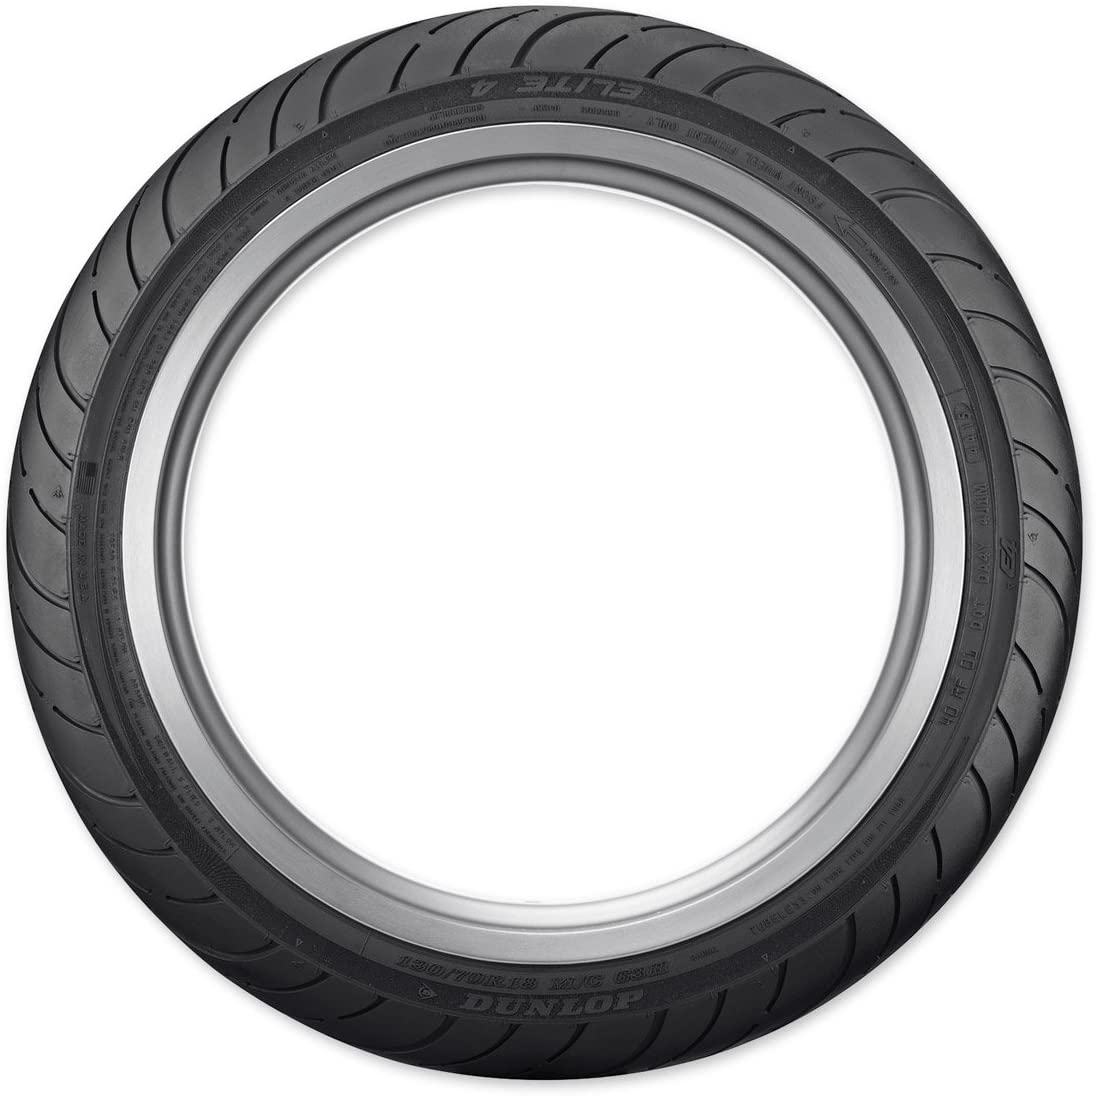 63H for Victory V106 Cross Country 8 Ball 2014-2016 Shinko SE890 Journey Touring Front Motorcycle Tire 130//70R-18